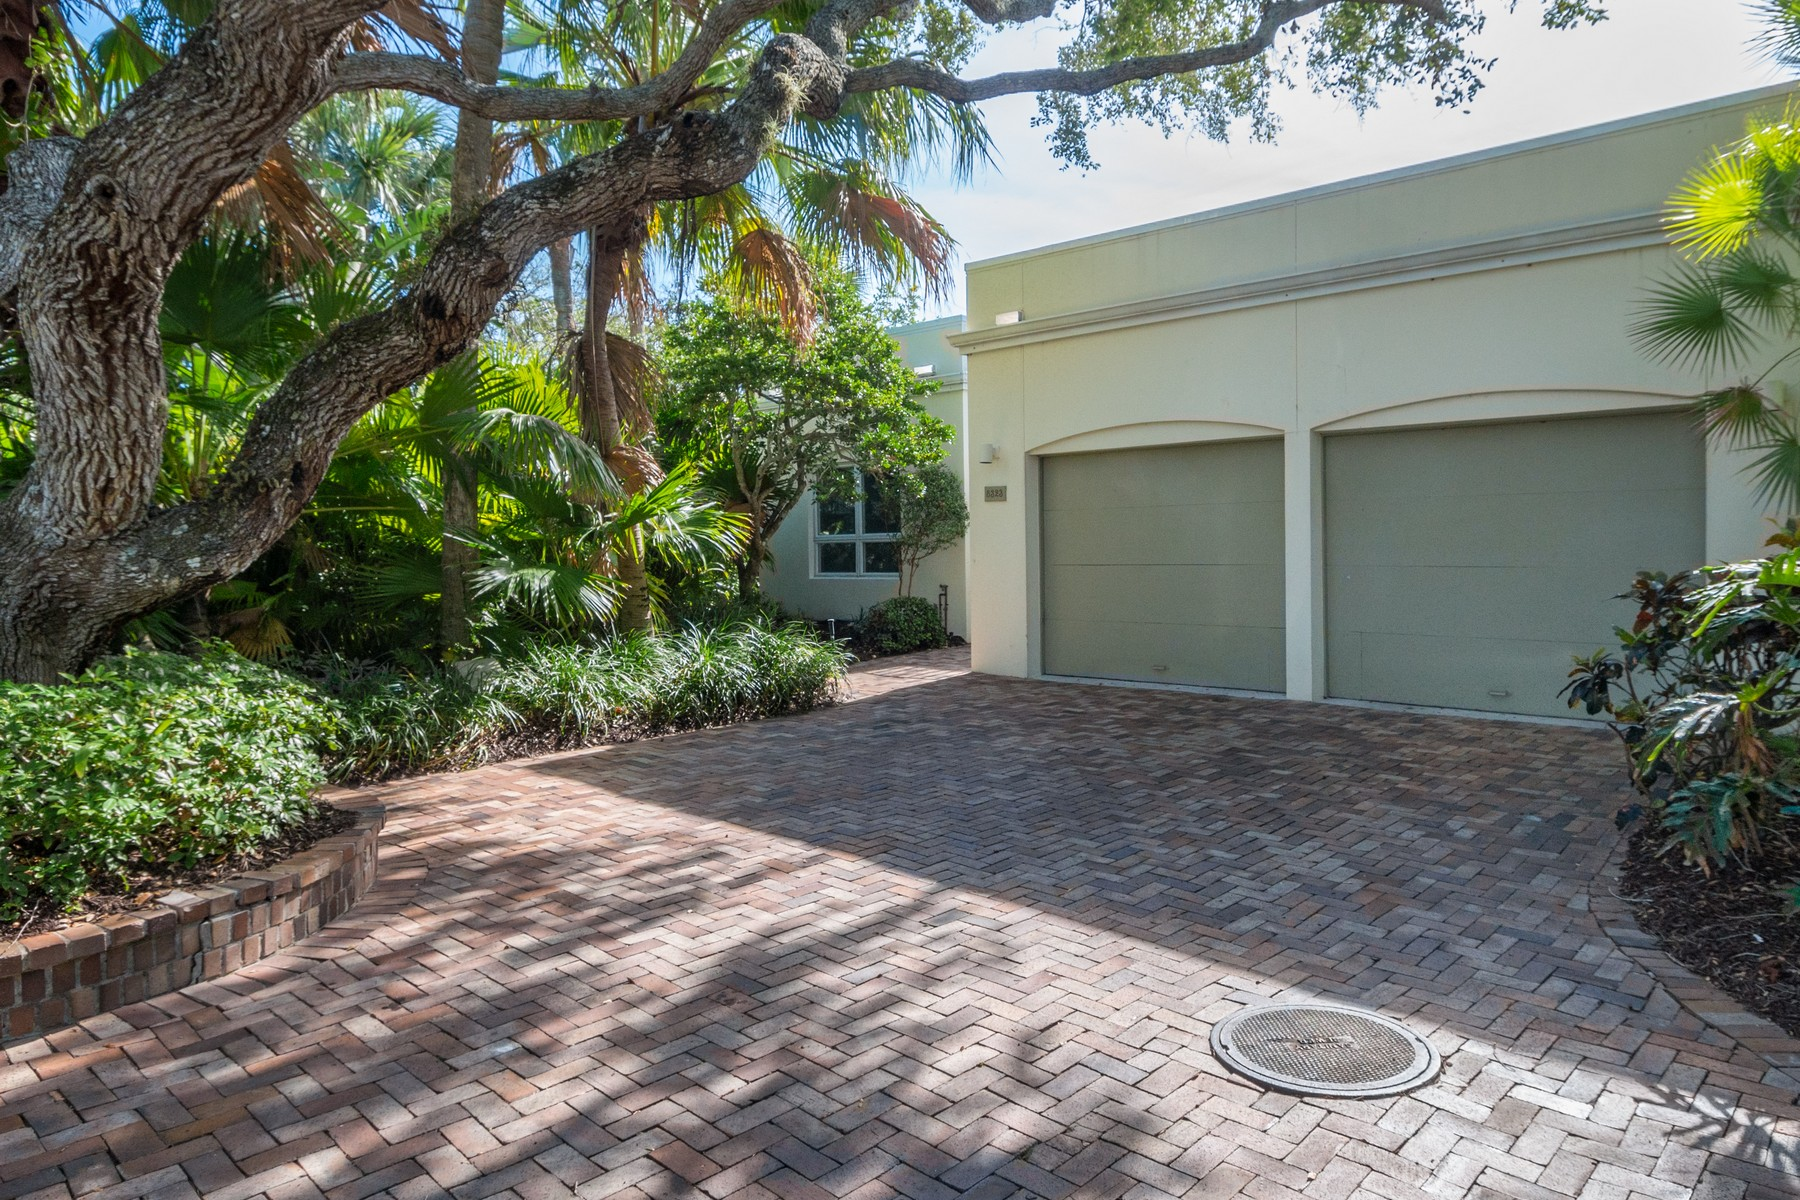 Condominium for Sale at Beautiful Courtyard home 8323 Chinaberry Rd Vero Beach, Florida 32963 United States